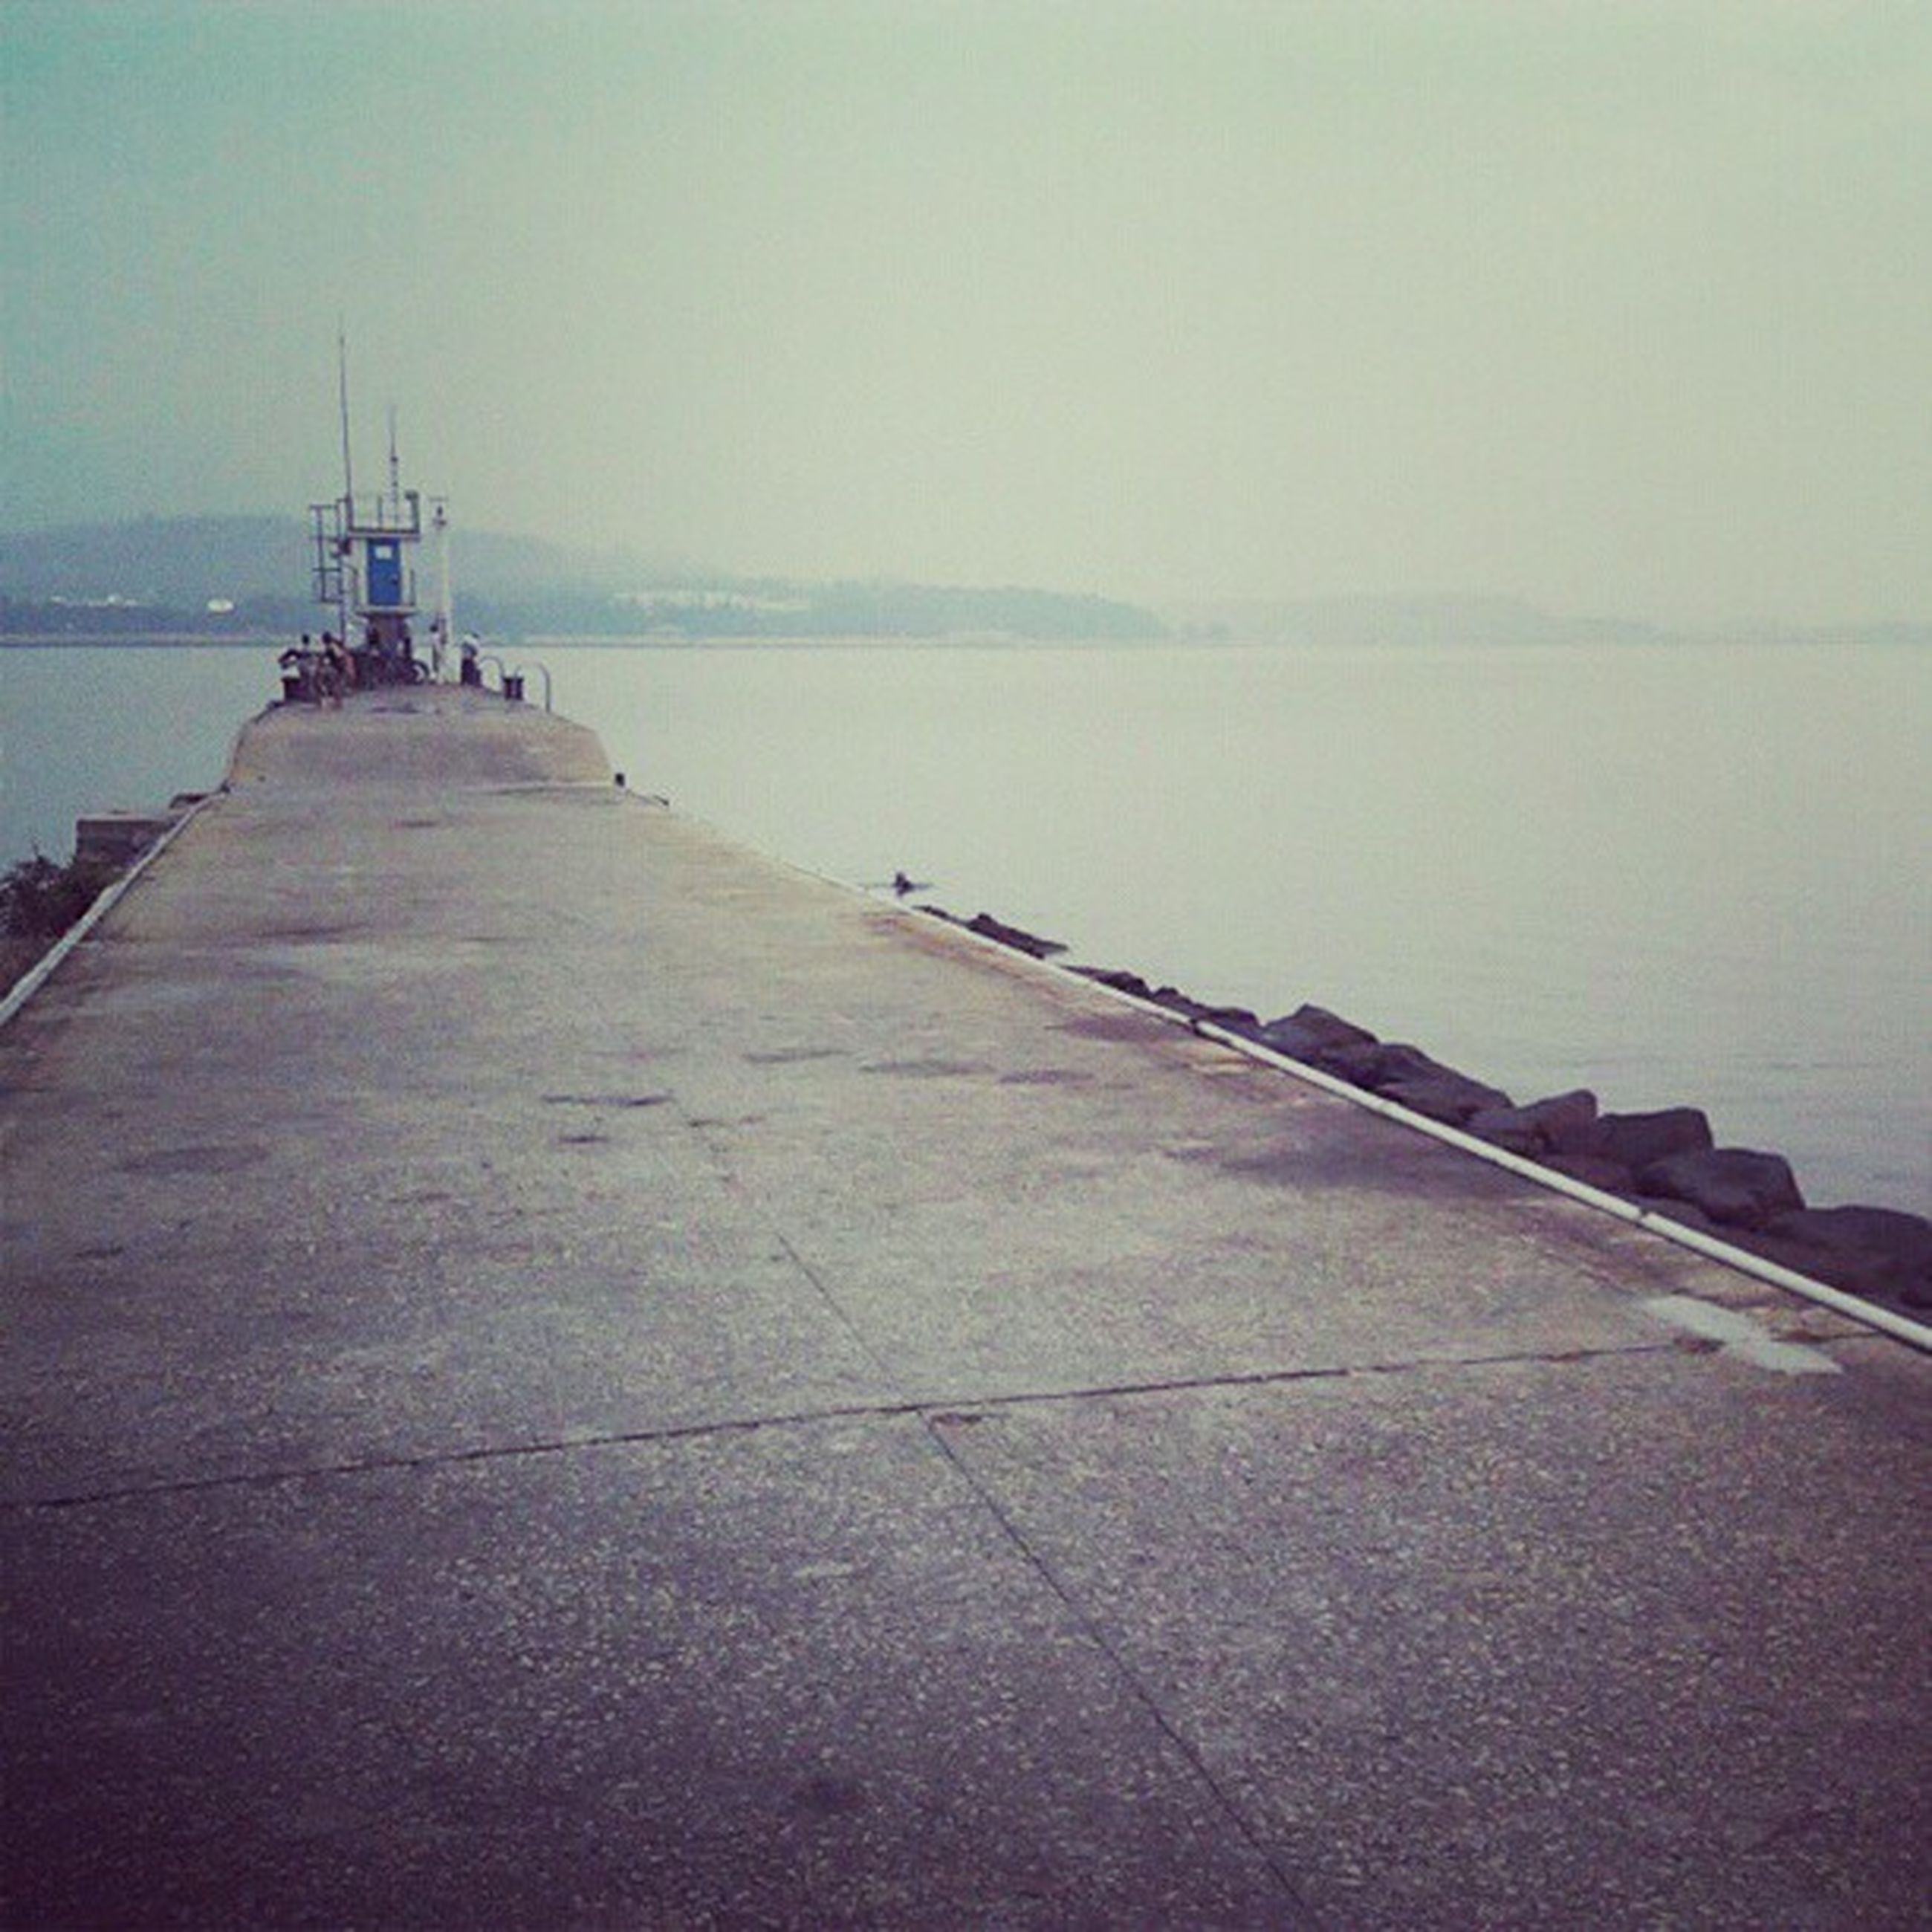 water, sea, clear sky, copy space, sky, built structure, pier, horizon over water, tranquility, the way forward, tranquil scene, transportation, nature, architecture, scenics, day, outdoors, nautical vessel, jetty, beauty in nature